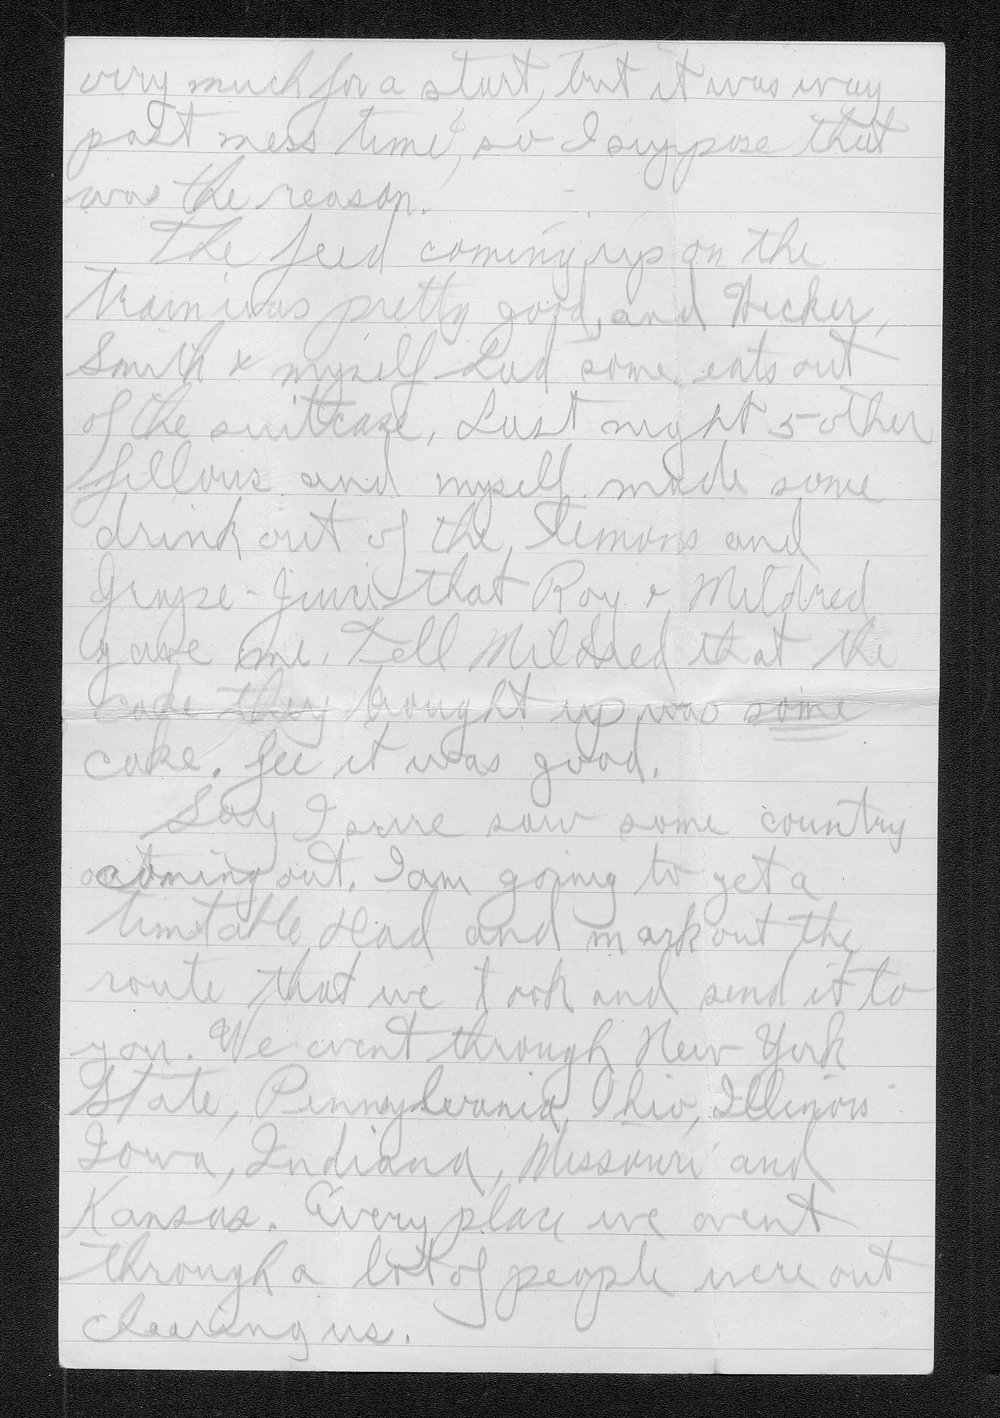 Clark Bruster to his family - 4